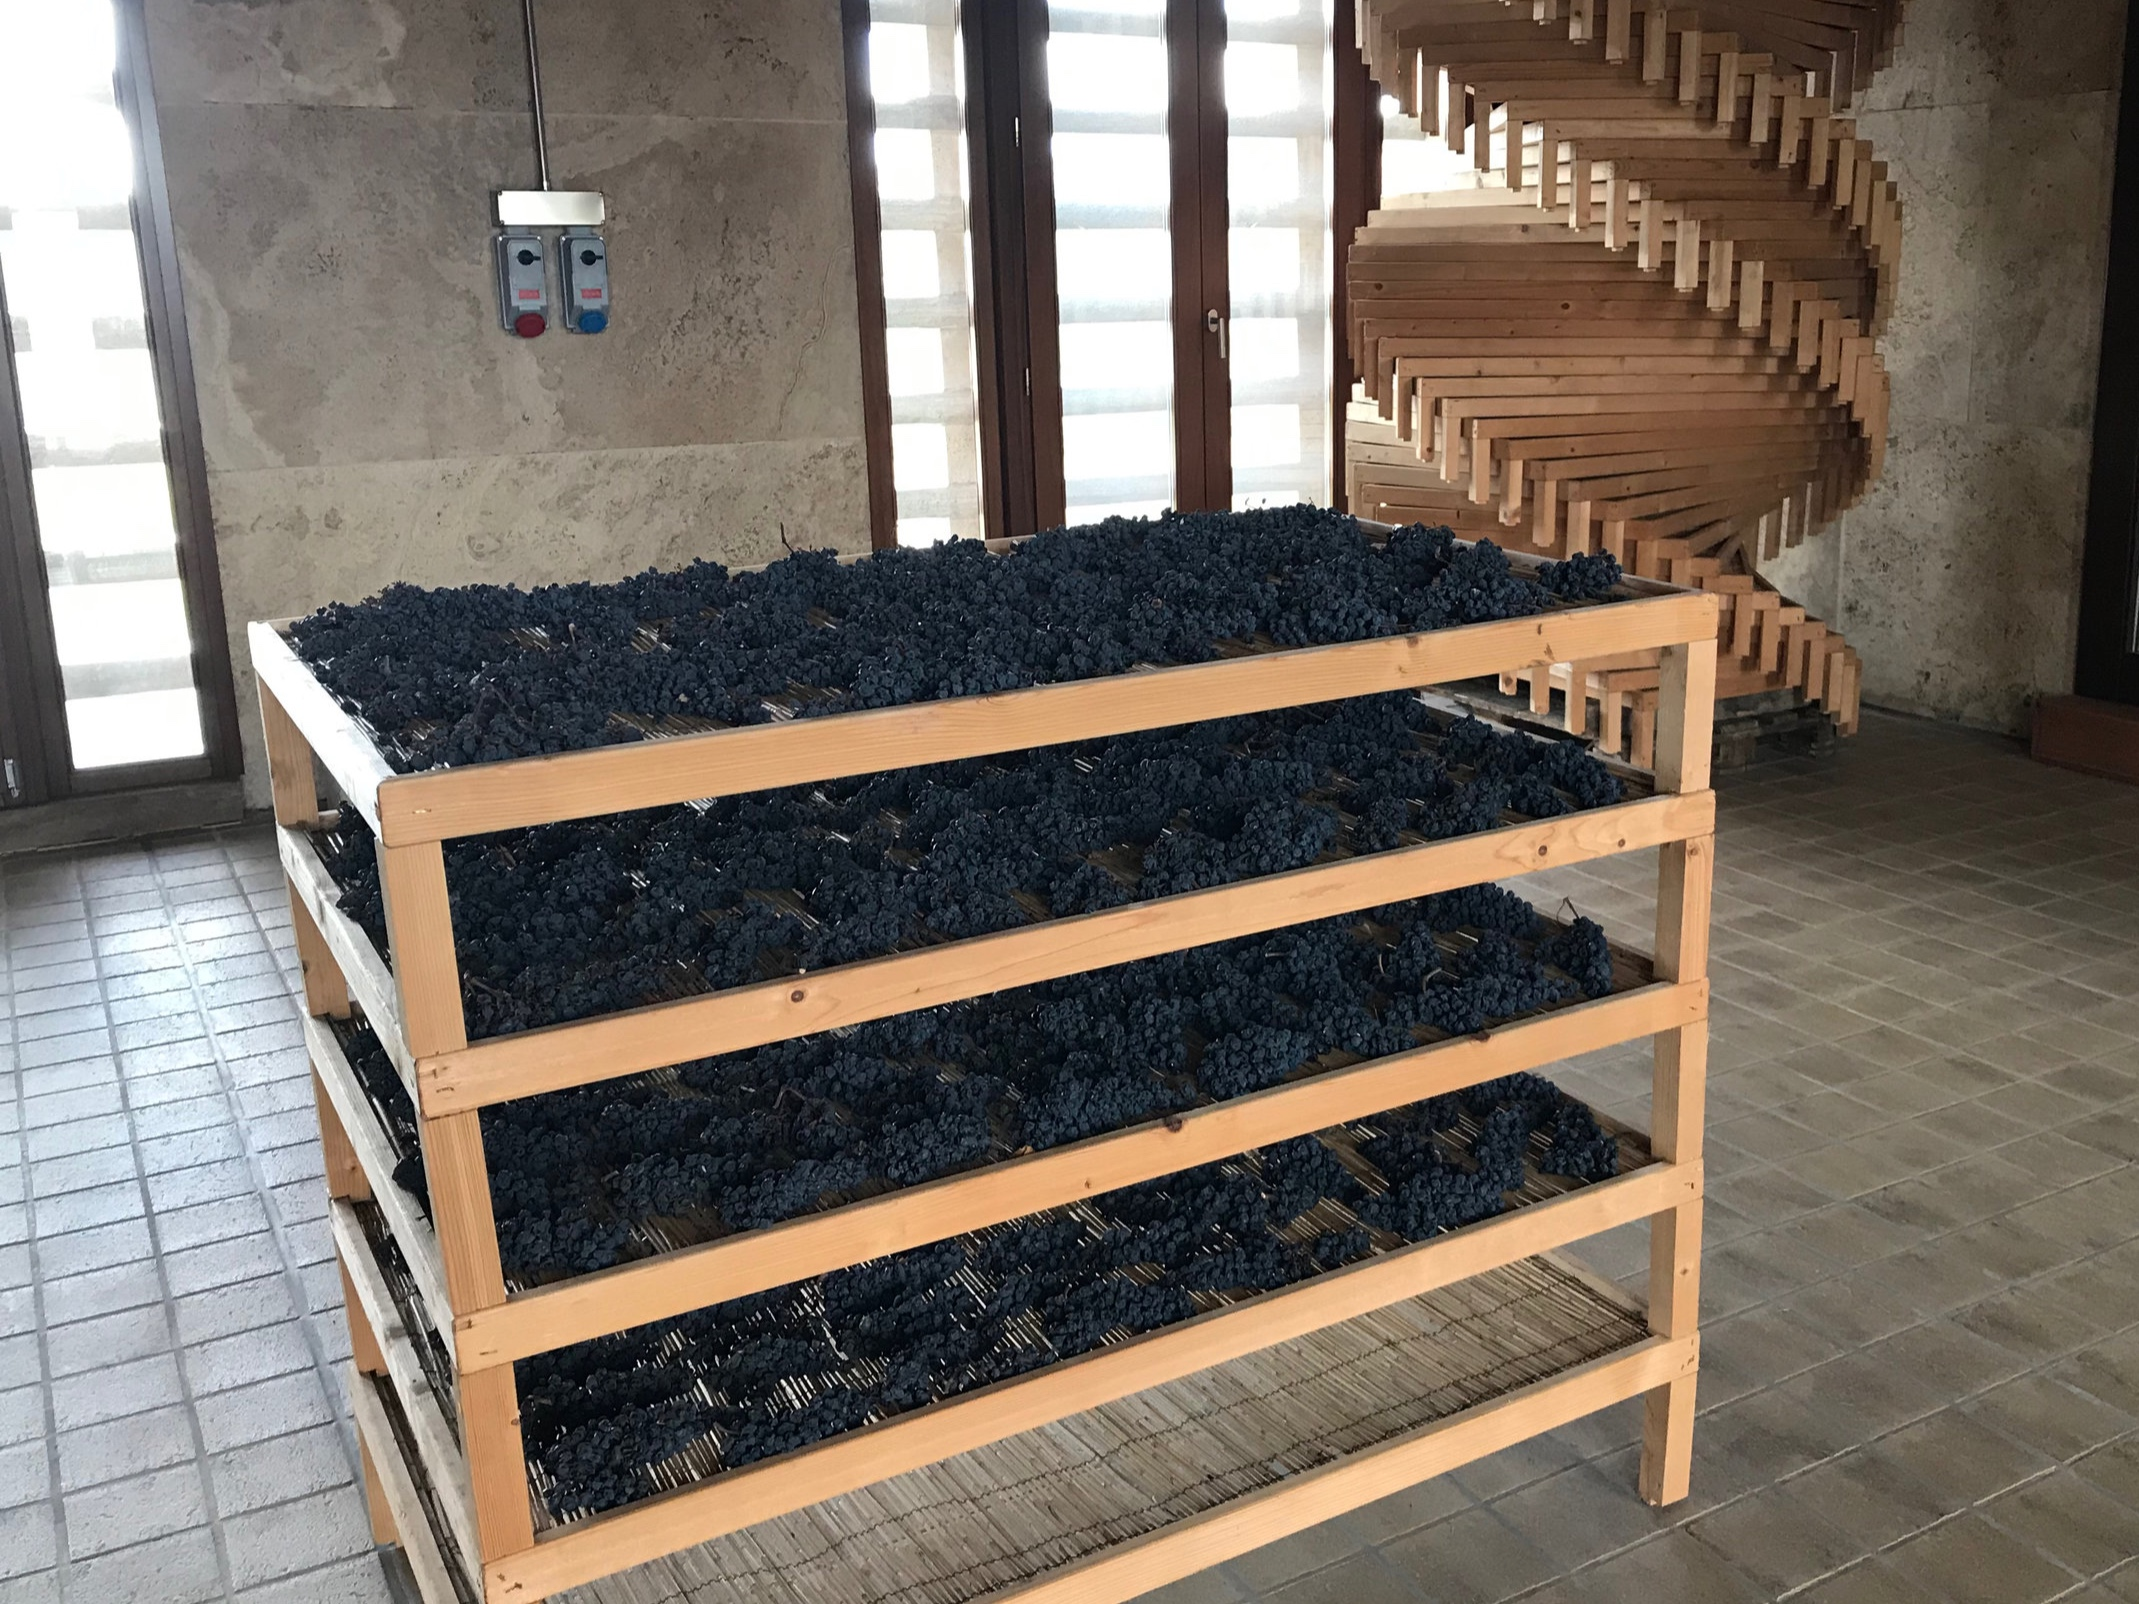 A drying rack for making Passito wines (and a stack of more racks in the background). The drying room is upstairs with windows on each side to make the best use of the weather after harvest.